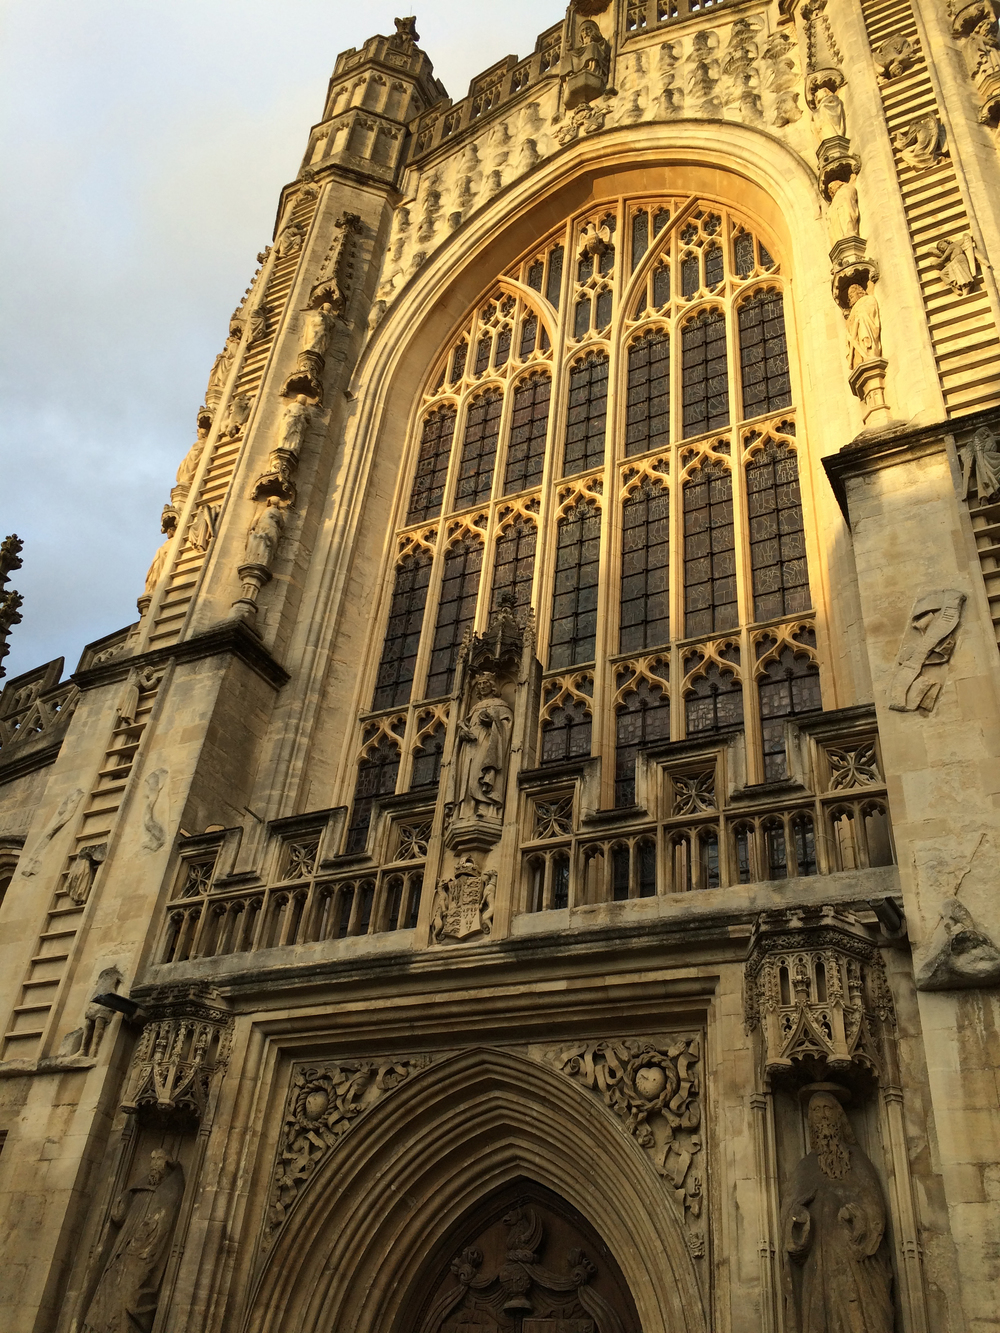 The facade of Bath Abbey was golden in the twilight.